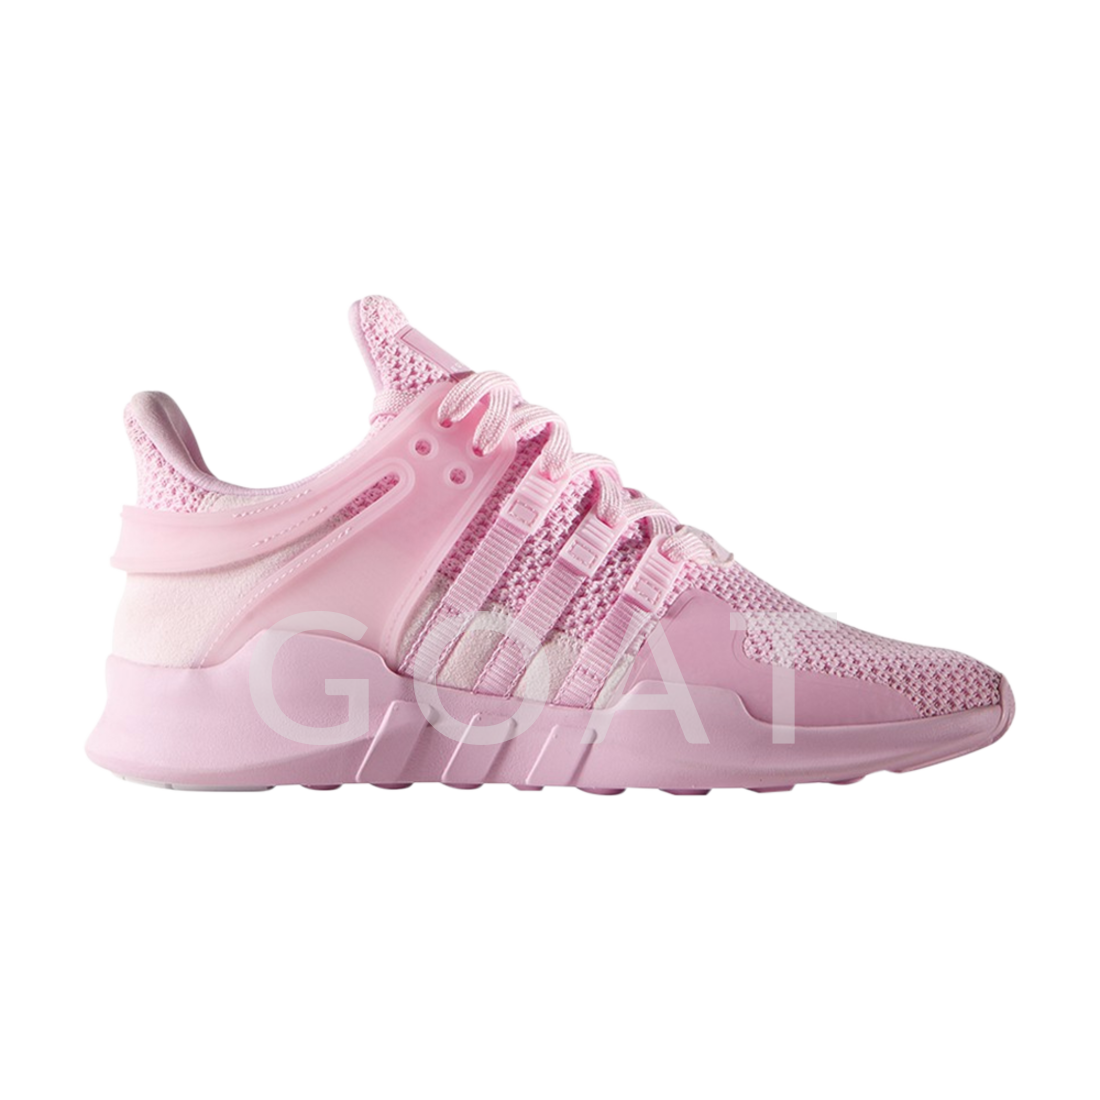 ... Wmns EQT Support ADV Clear Pink - Adidas - BB1361 - clear pinkftwr  whiteclear pink GOAT adidas originals EQT equipment support ADV W clear  white ... 6282d2706